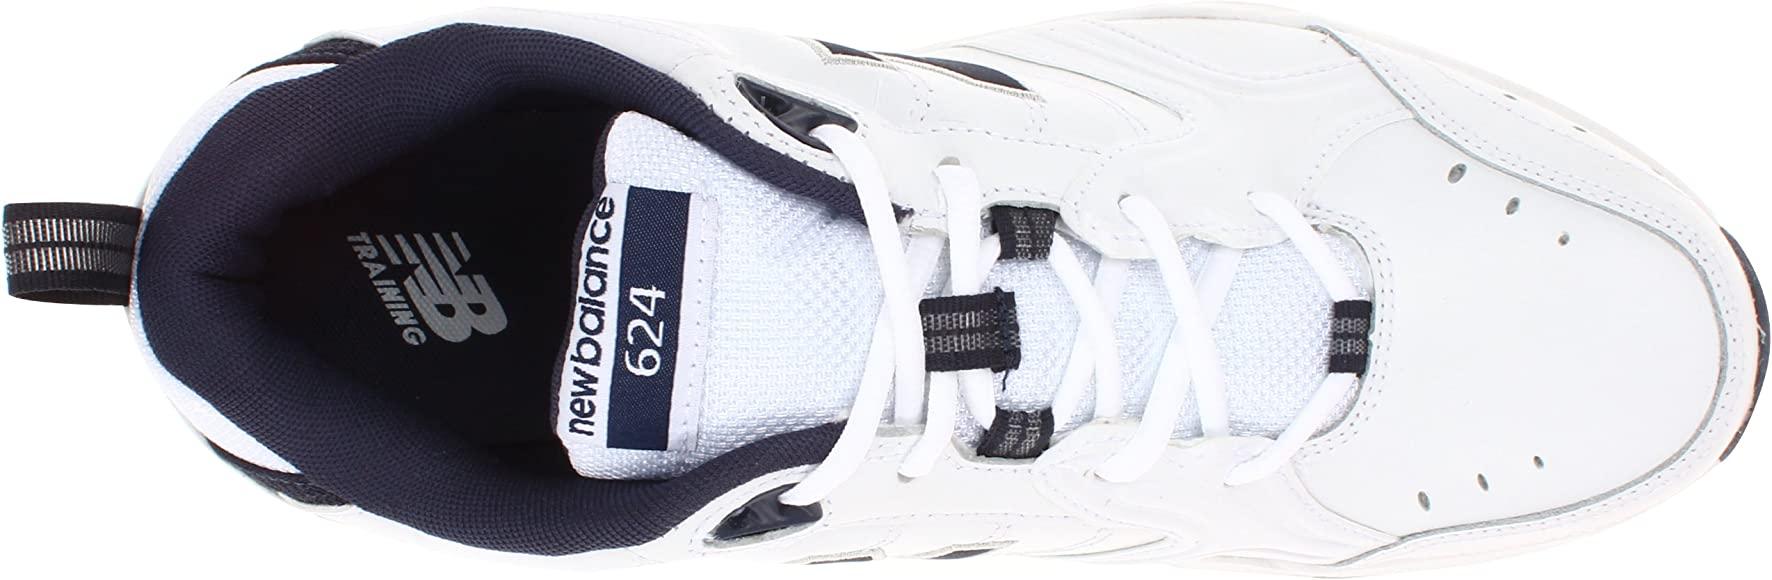 d3cf607f5b5 New Balance Men's MX624v2 Casual Comfort Training Shoe, White/Navy, 7 D US.  Back. Double-tap to zoom